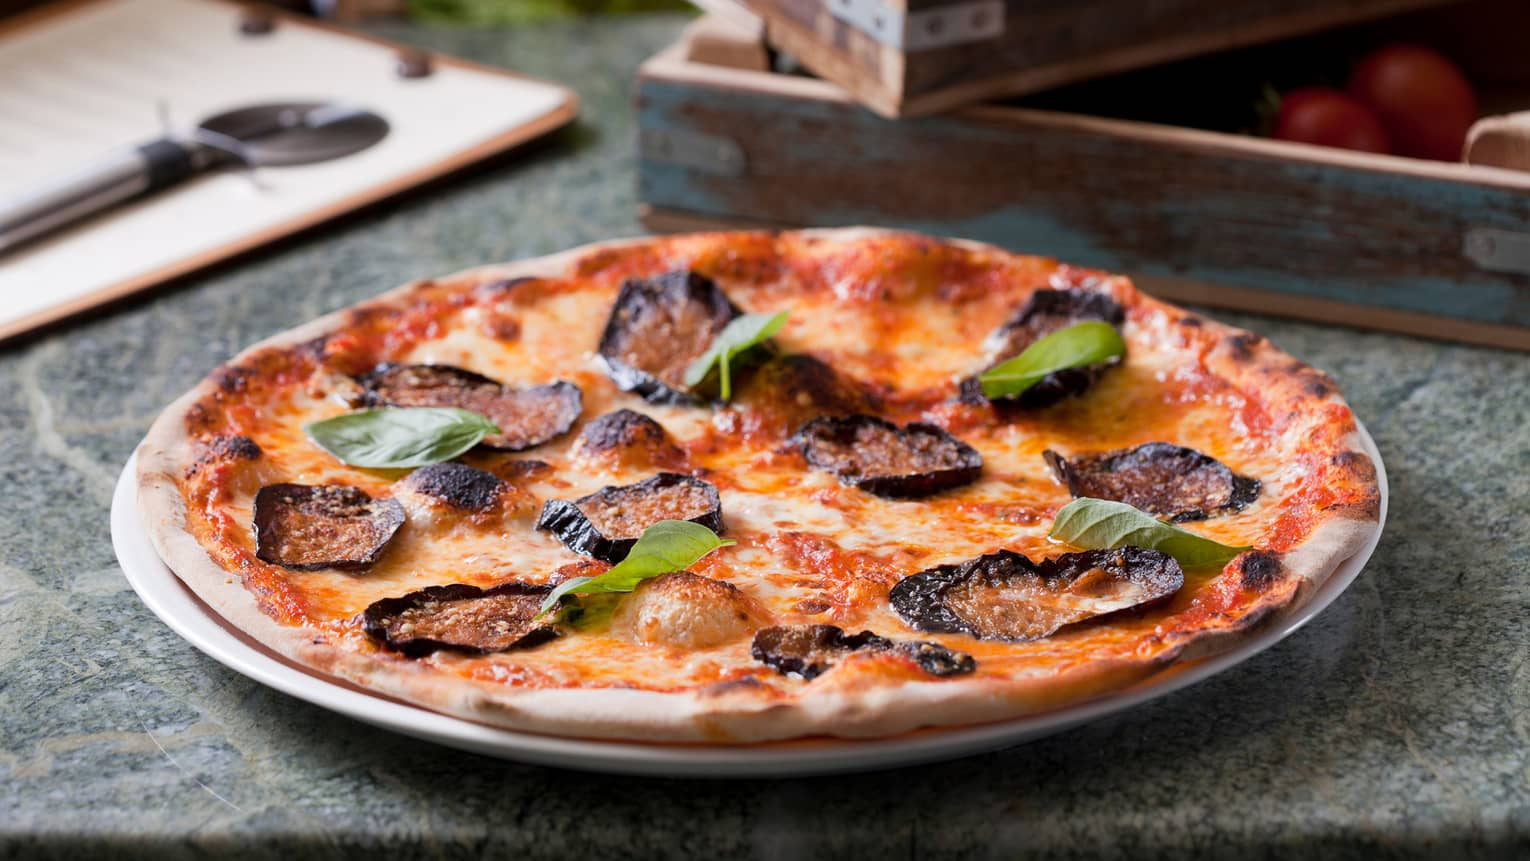 Crispy, thin-crust wood-fired pizza on plate